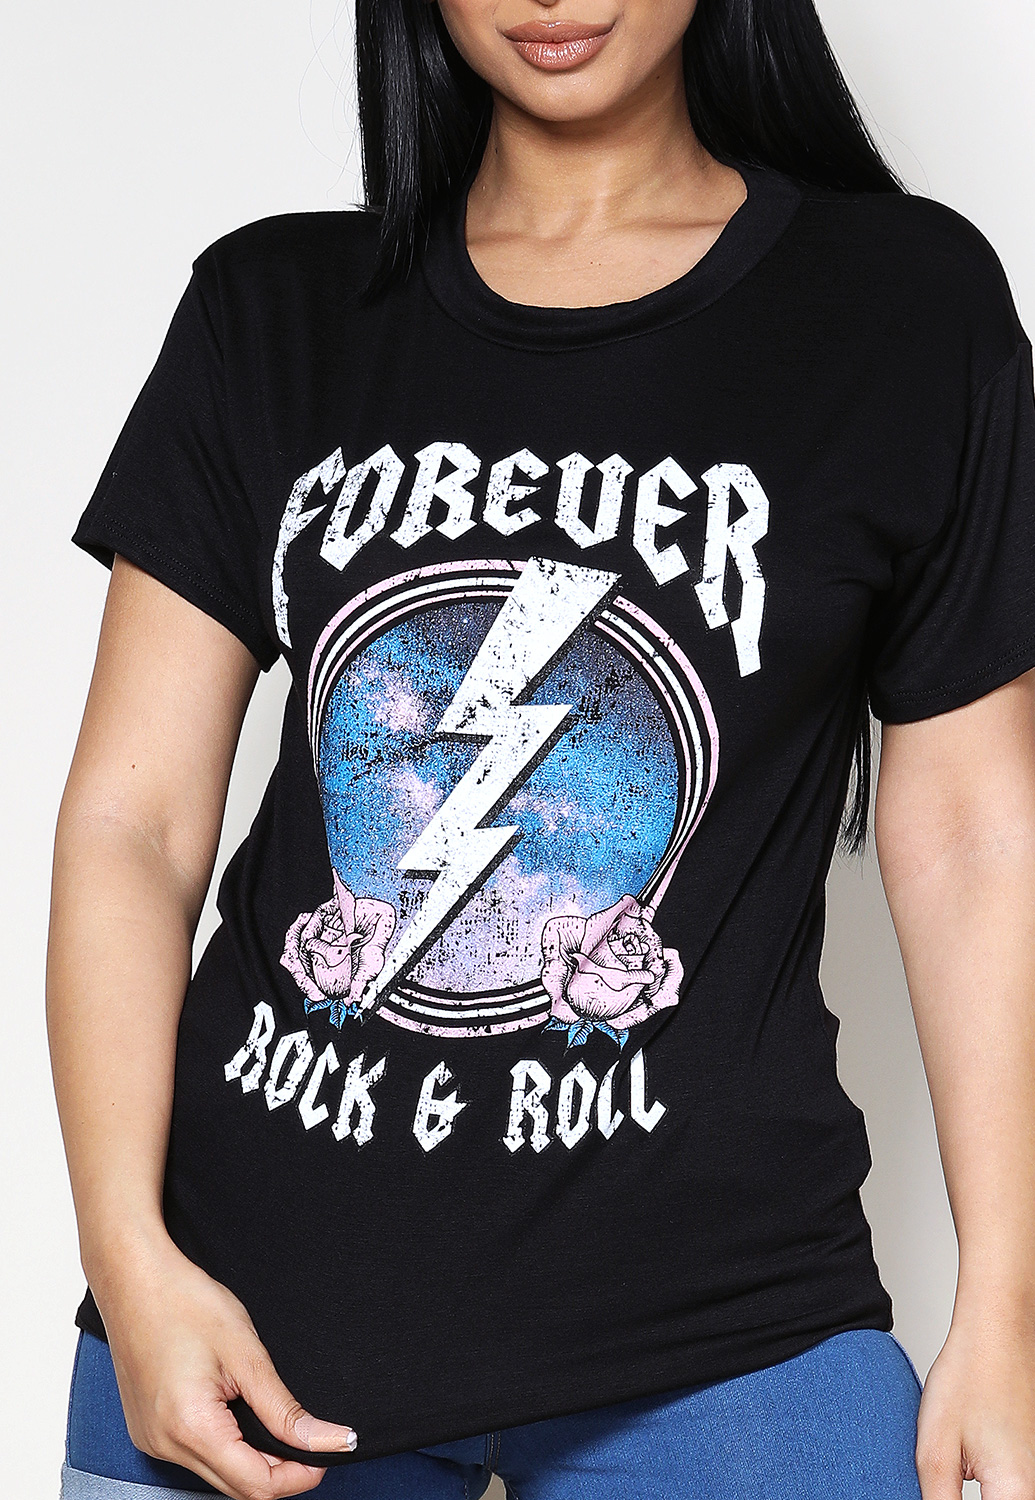 Forever Rock & Roll Graphic Tee